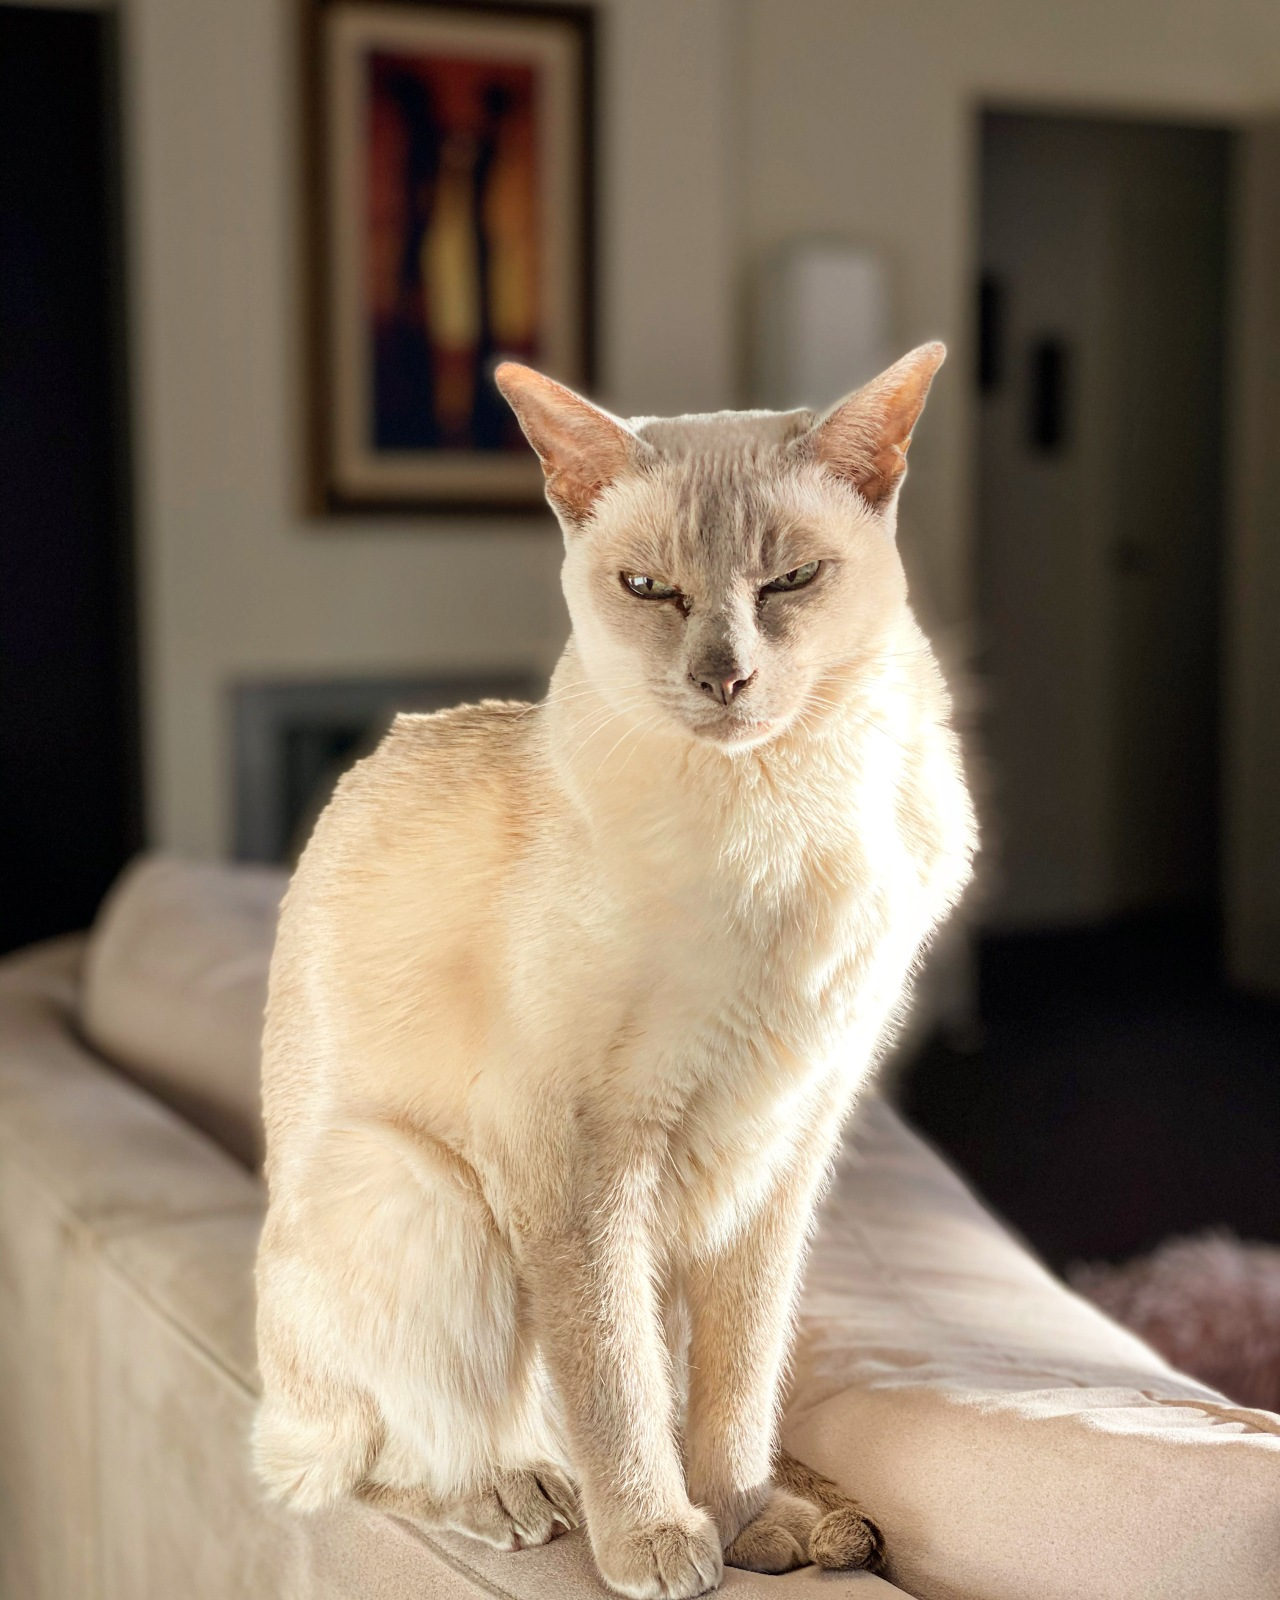 Lilac point Tonkinese cat (Sissy) sitting in the sunshine on the back of a cream-colored couch in a living room